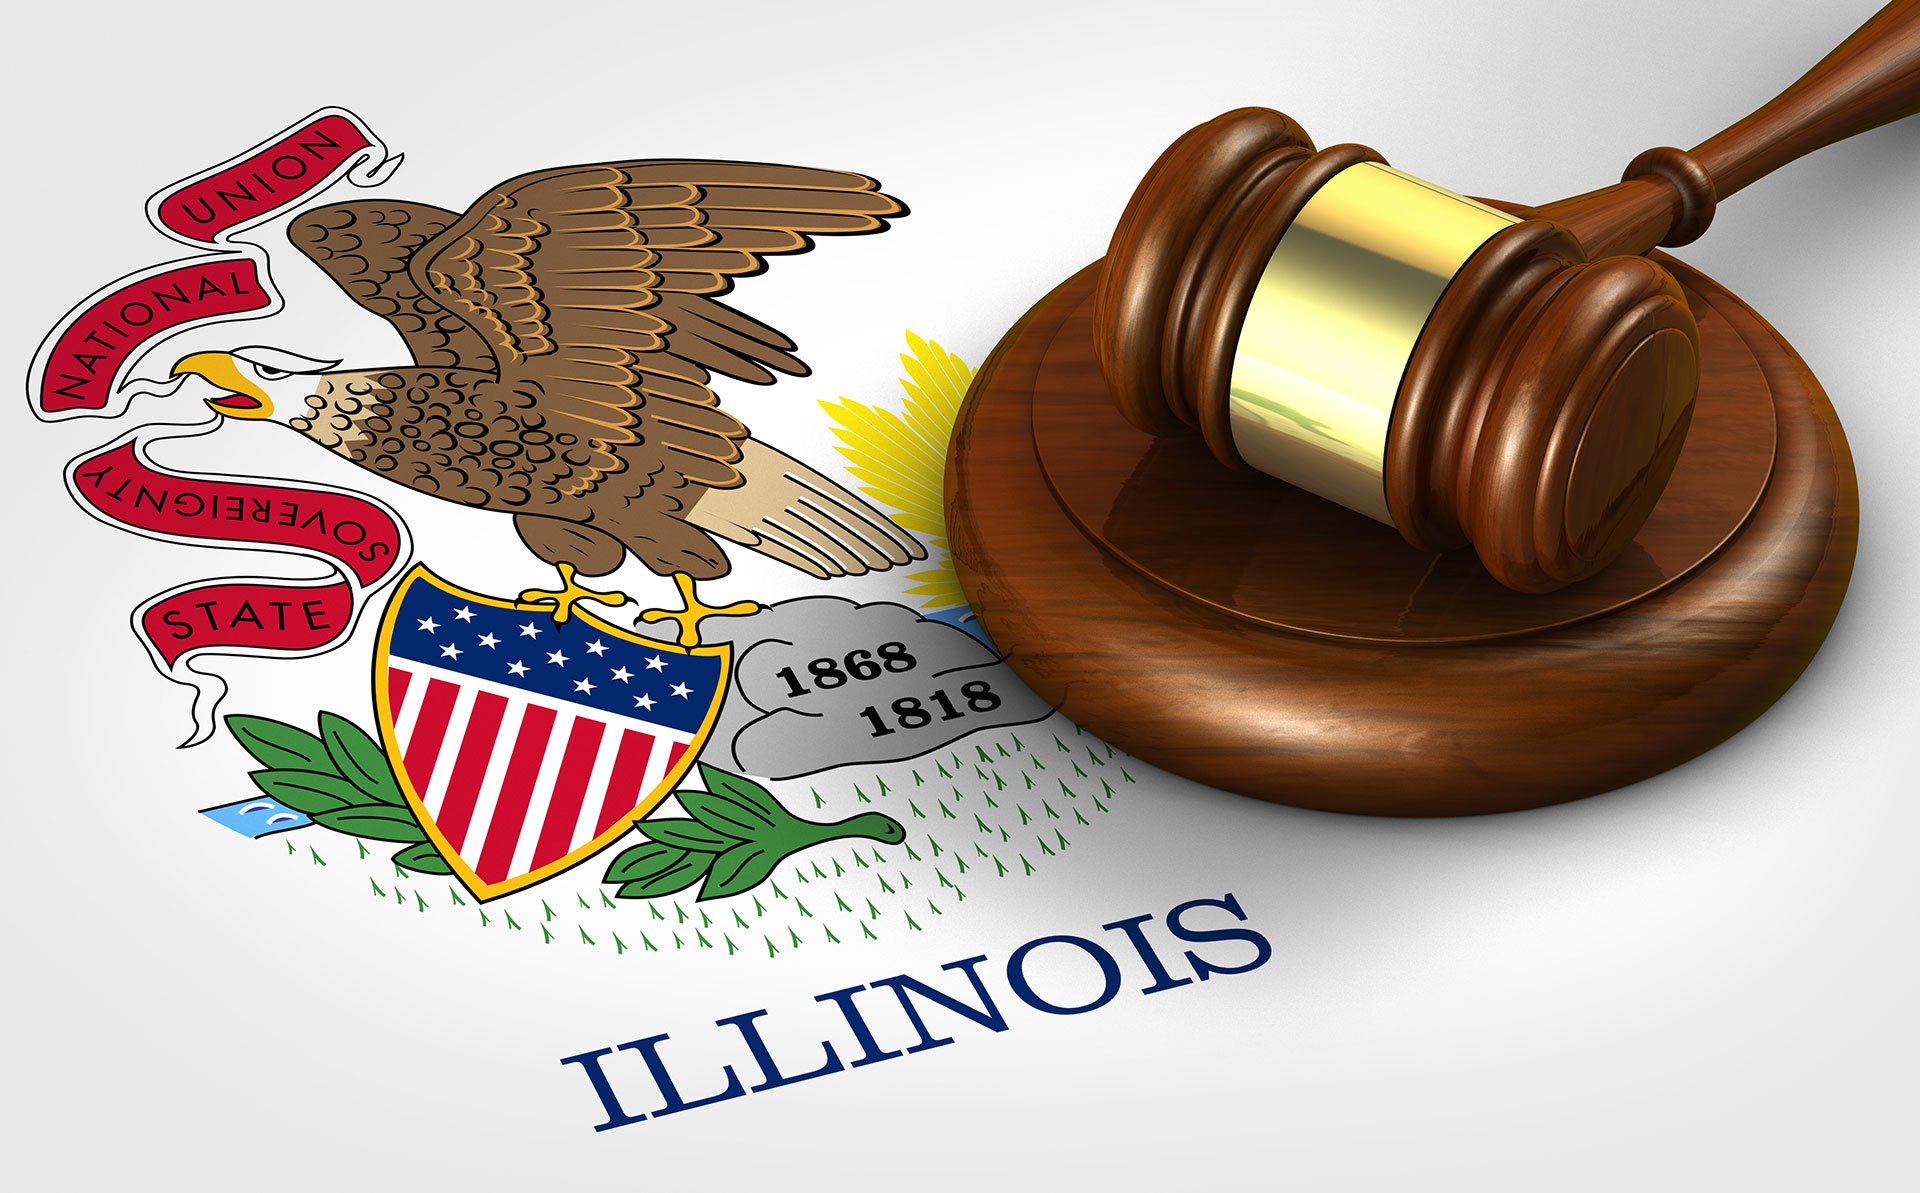 How to find who is the best lawyer for car accident injury claim cases near me in Illinois